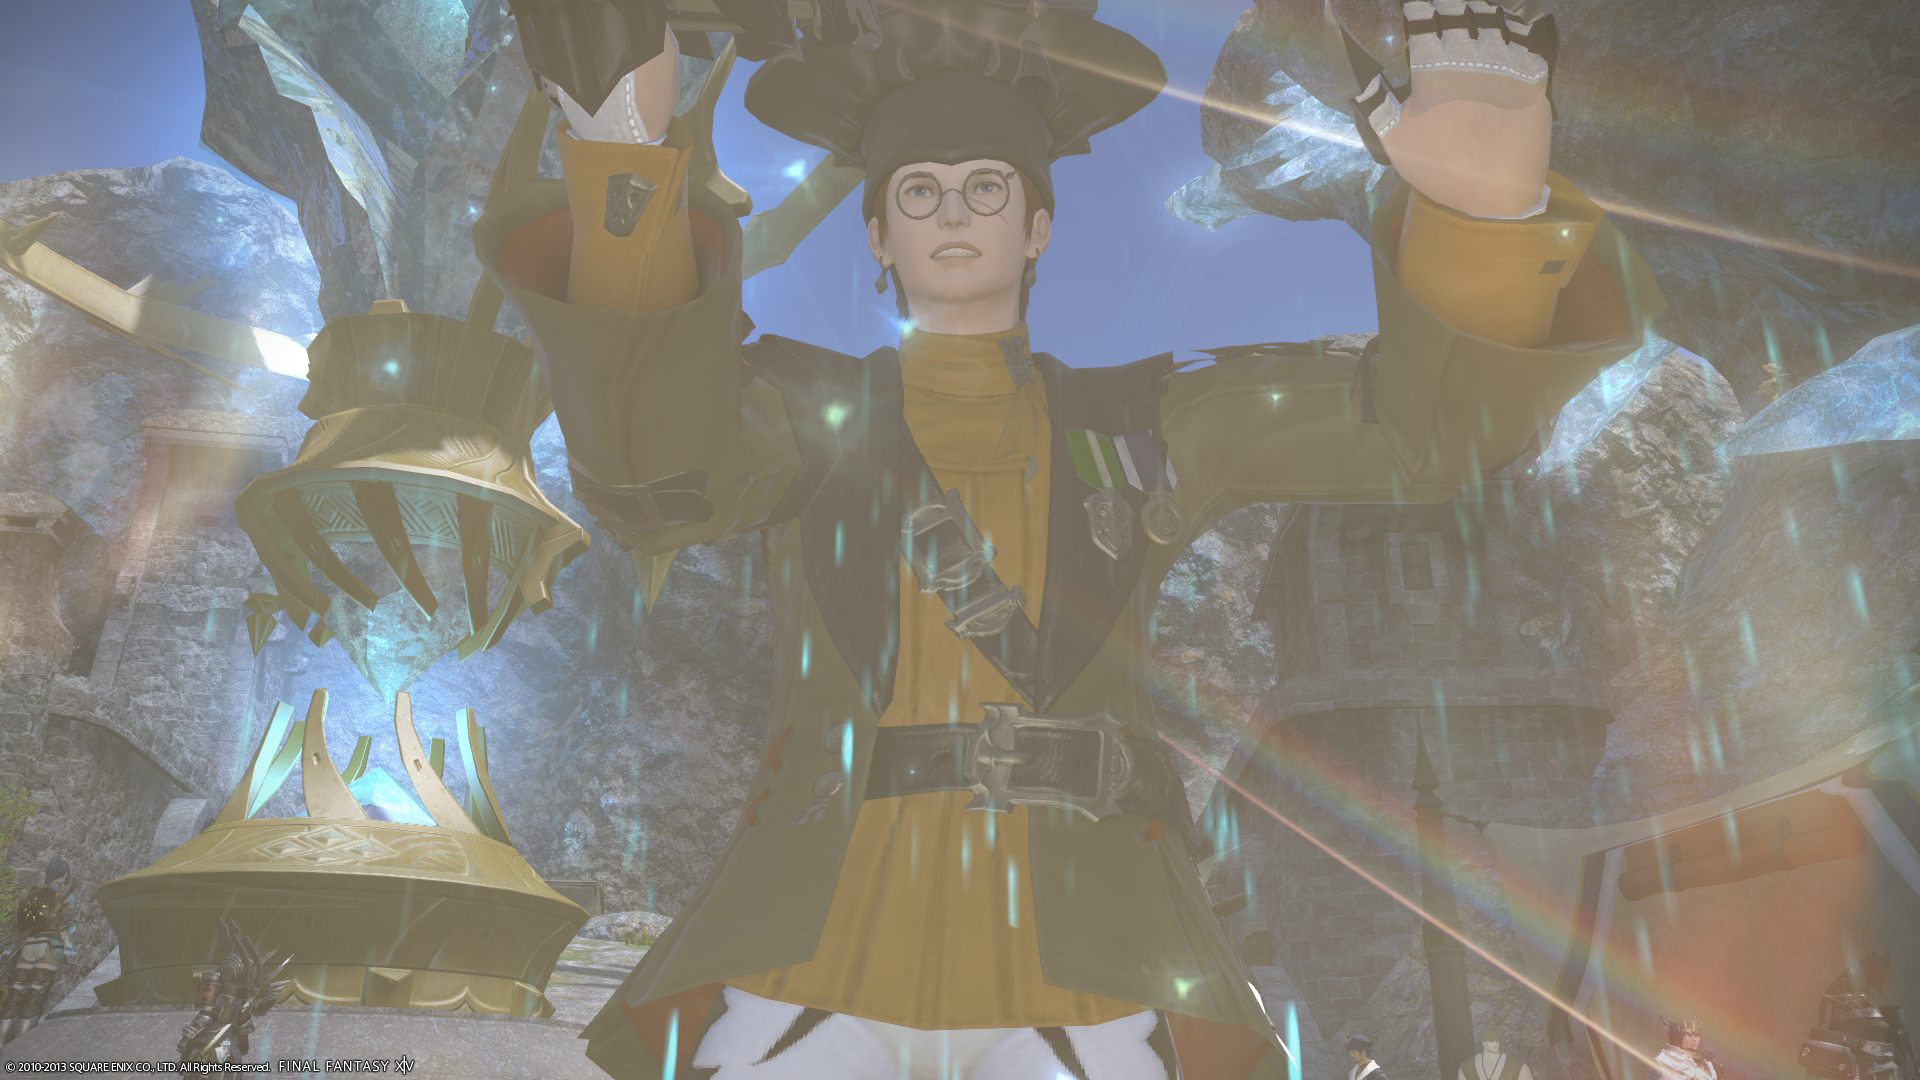 rocl ffxiv scaling them hurts down bucket size file need bigger 1920 stupid reborn screenshot thread realm fantasy 1017 somewhat less with release final